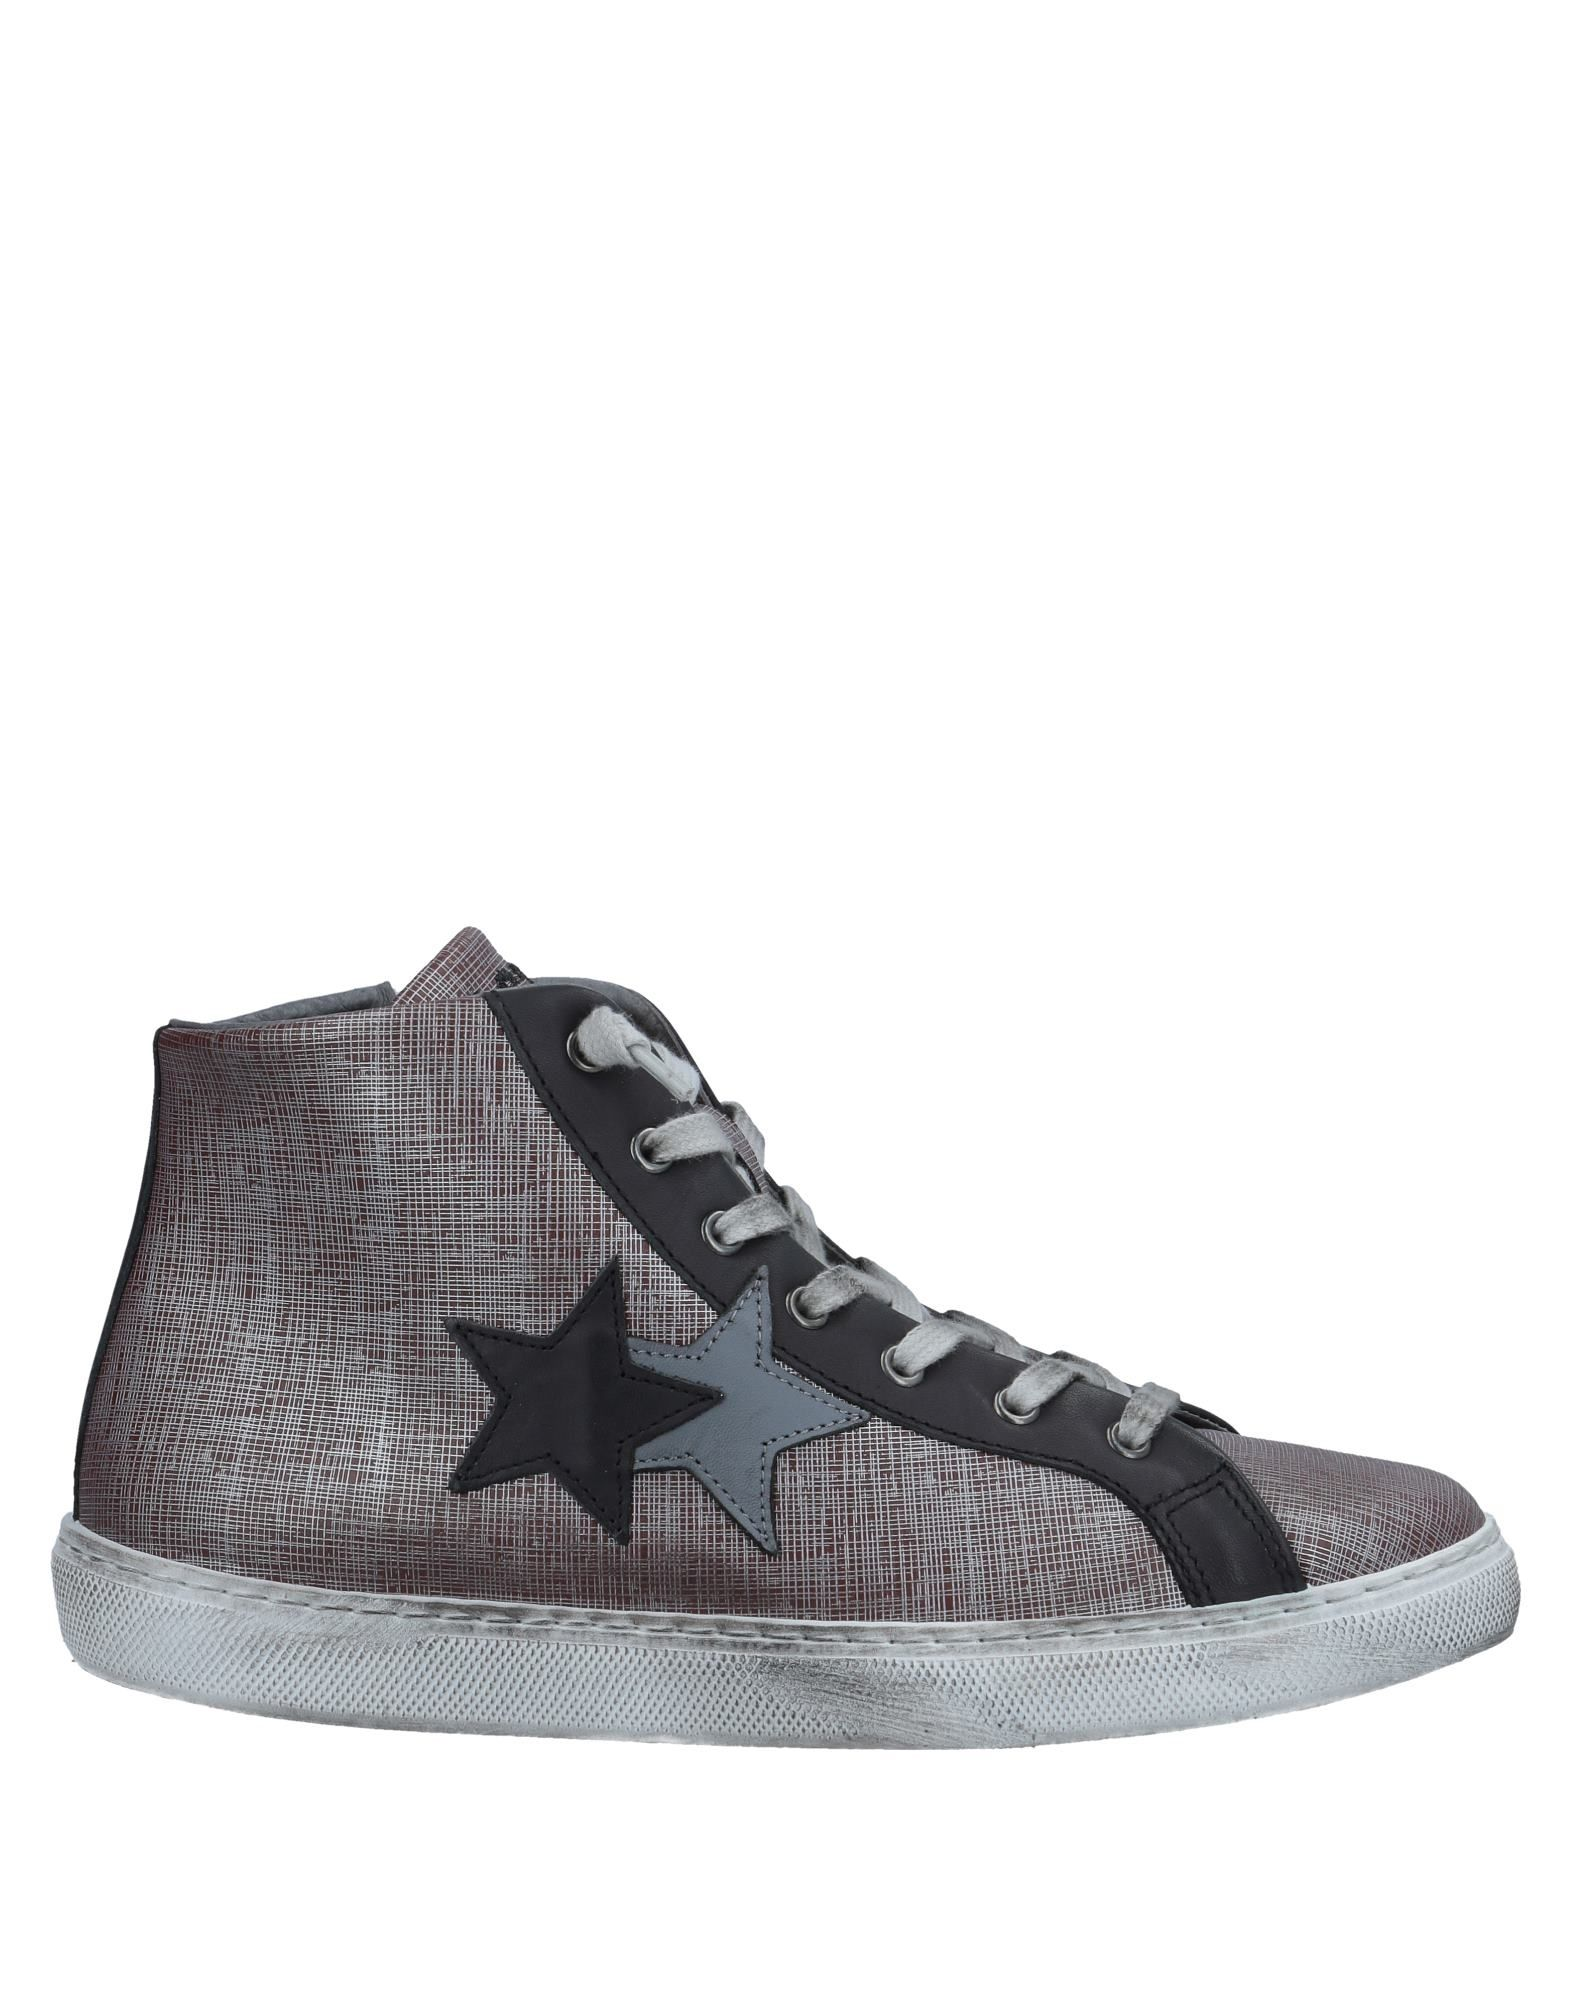 2Star Sneakers - Women 2Star United Sneakers online on  United 2Star Kingdom - 11548564SO 197745